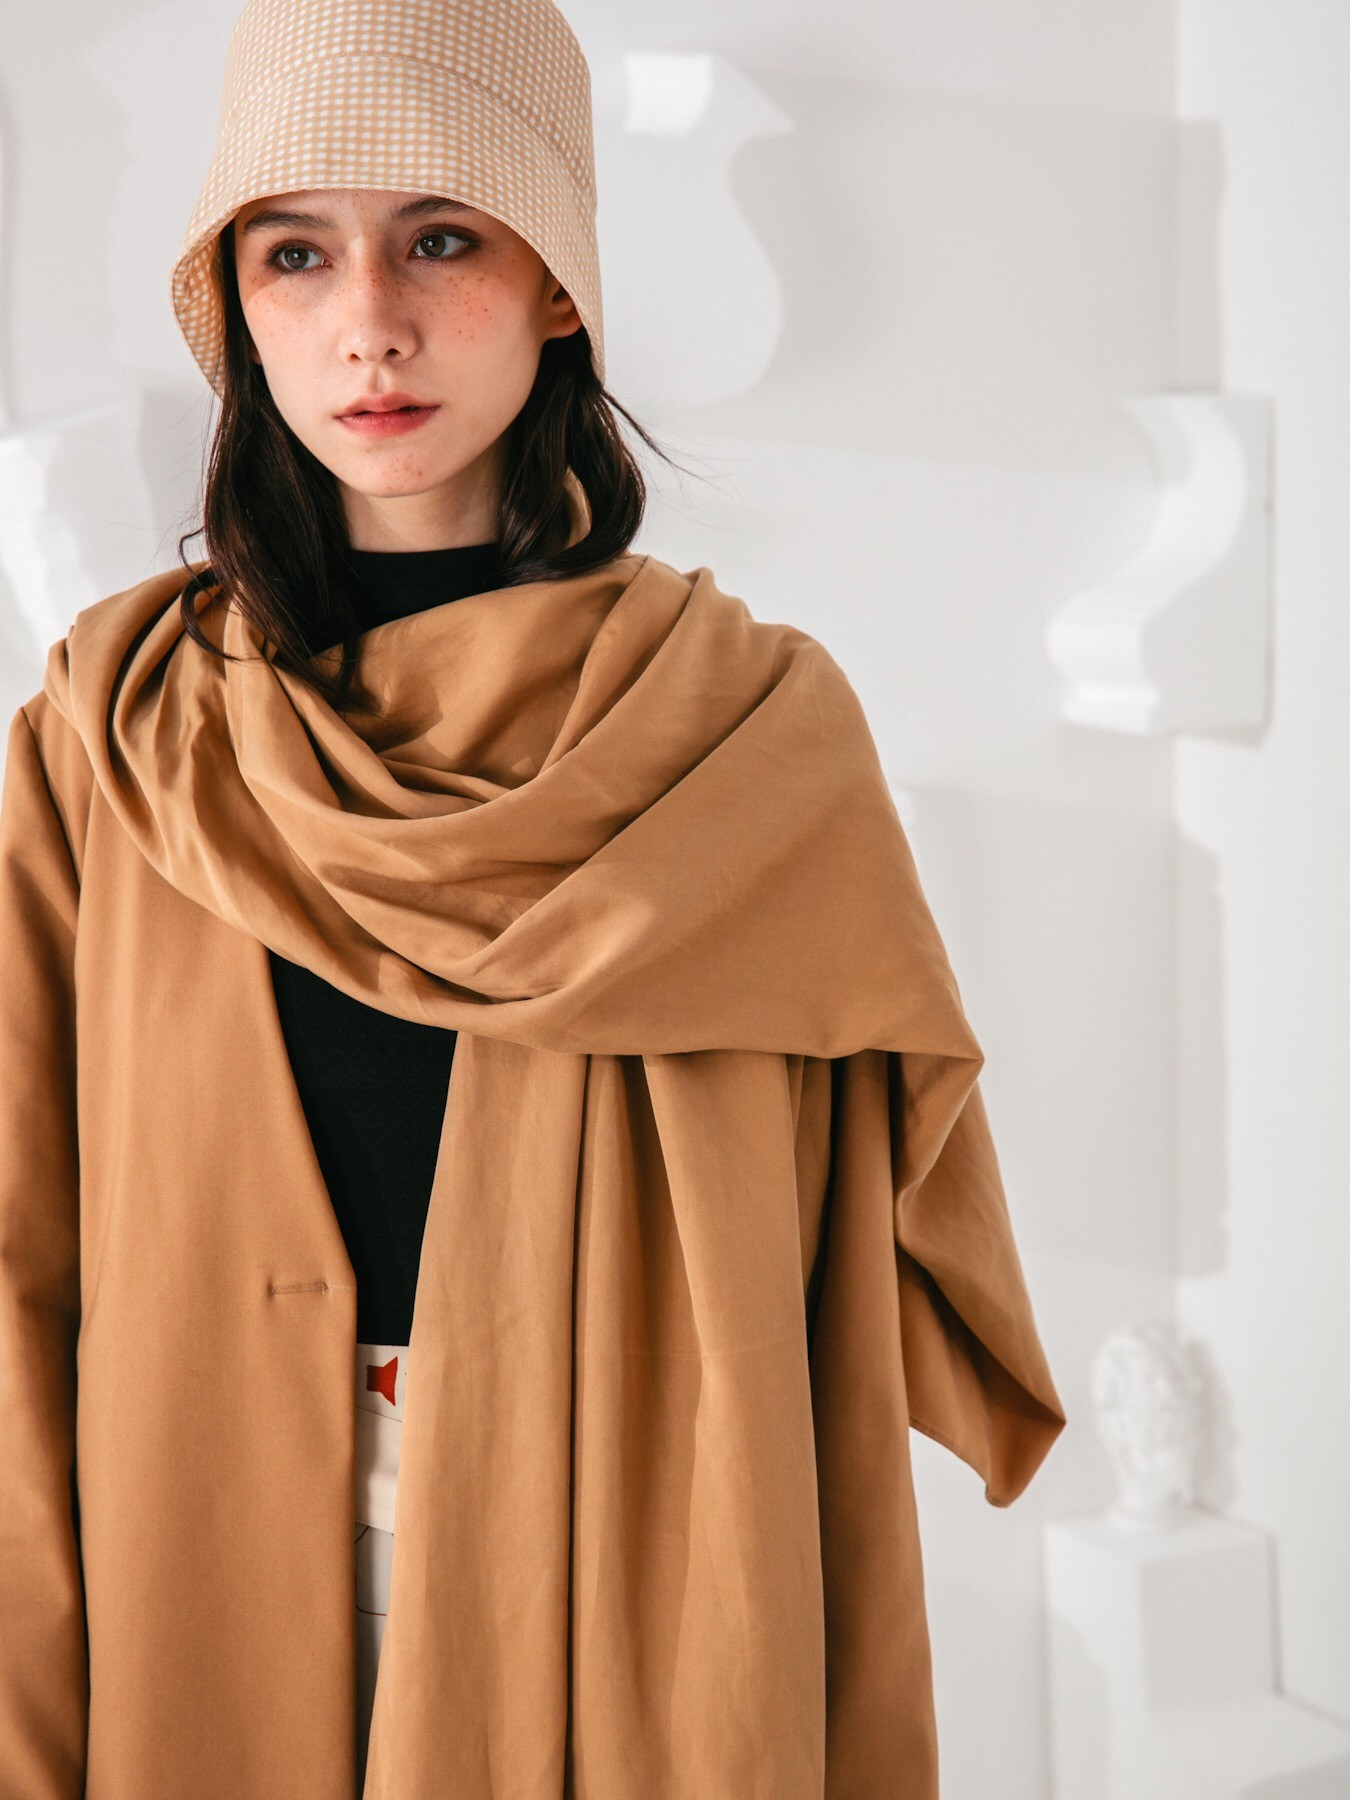 SKYE San Francisco SF shop ethical modern minimalist quality women clothing fashion fall 2019 new collection